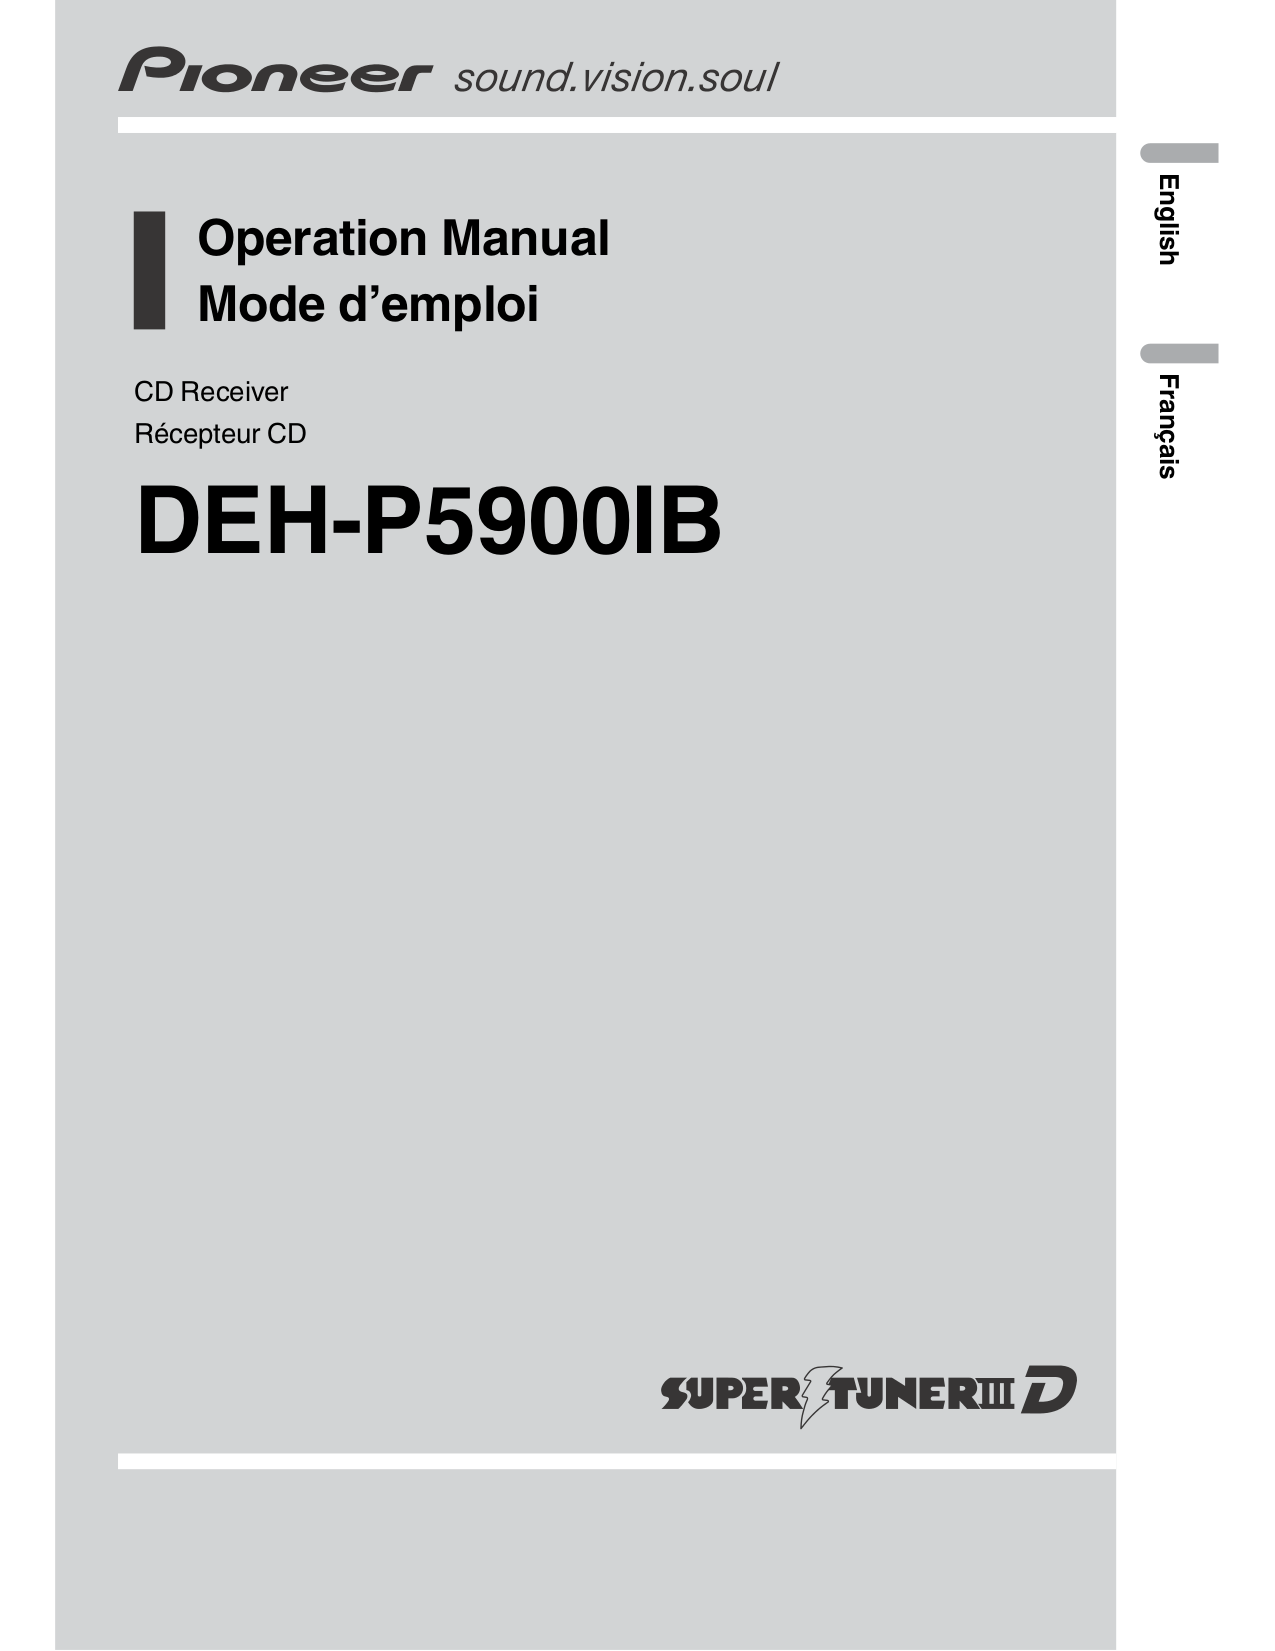 Wiring Diagram Pioneer Deh 17 Trusted Diagrams 1300mp Additionally 1100 Manual User Guide That Easy To Read U2022